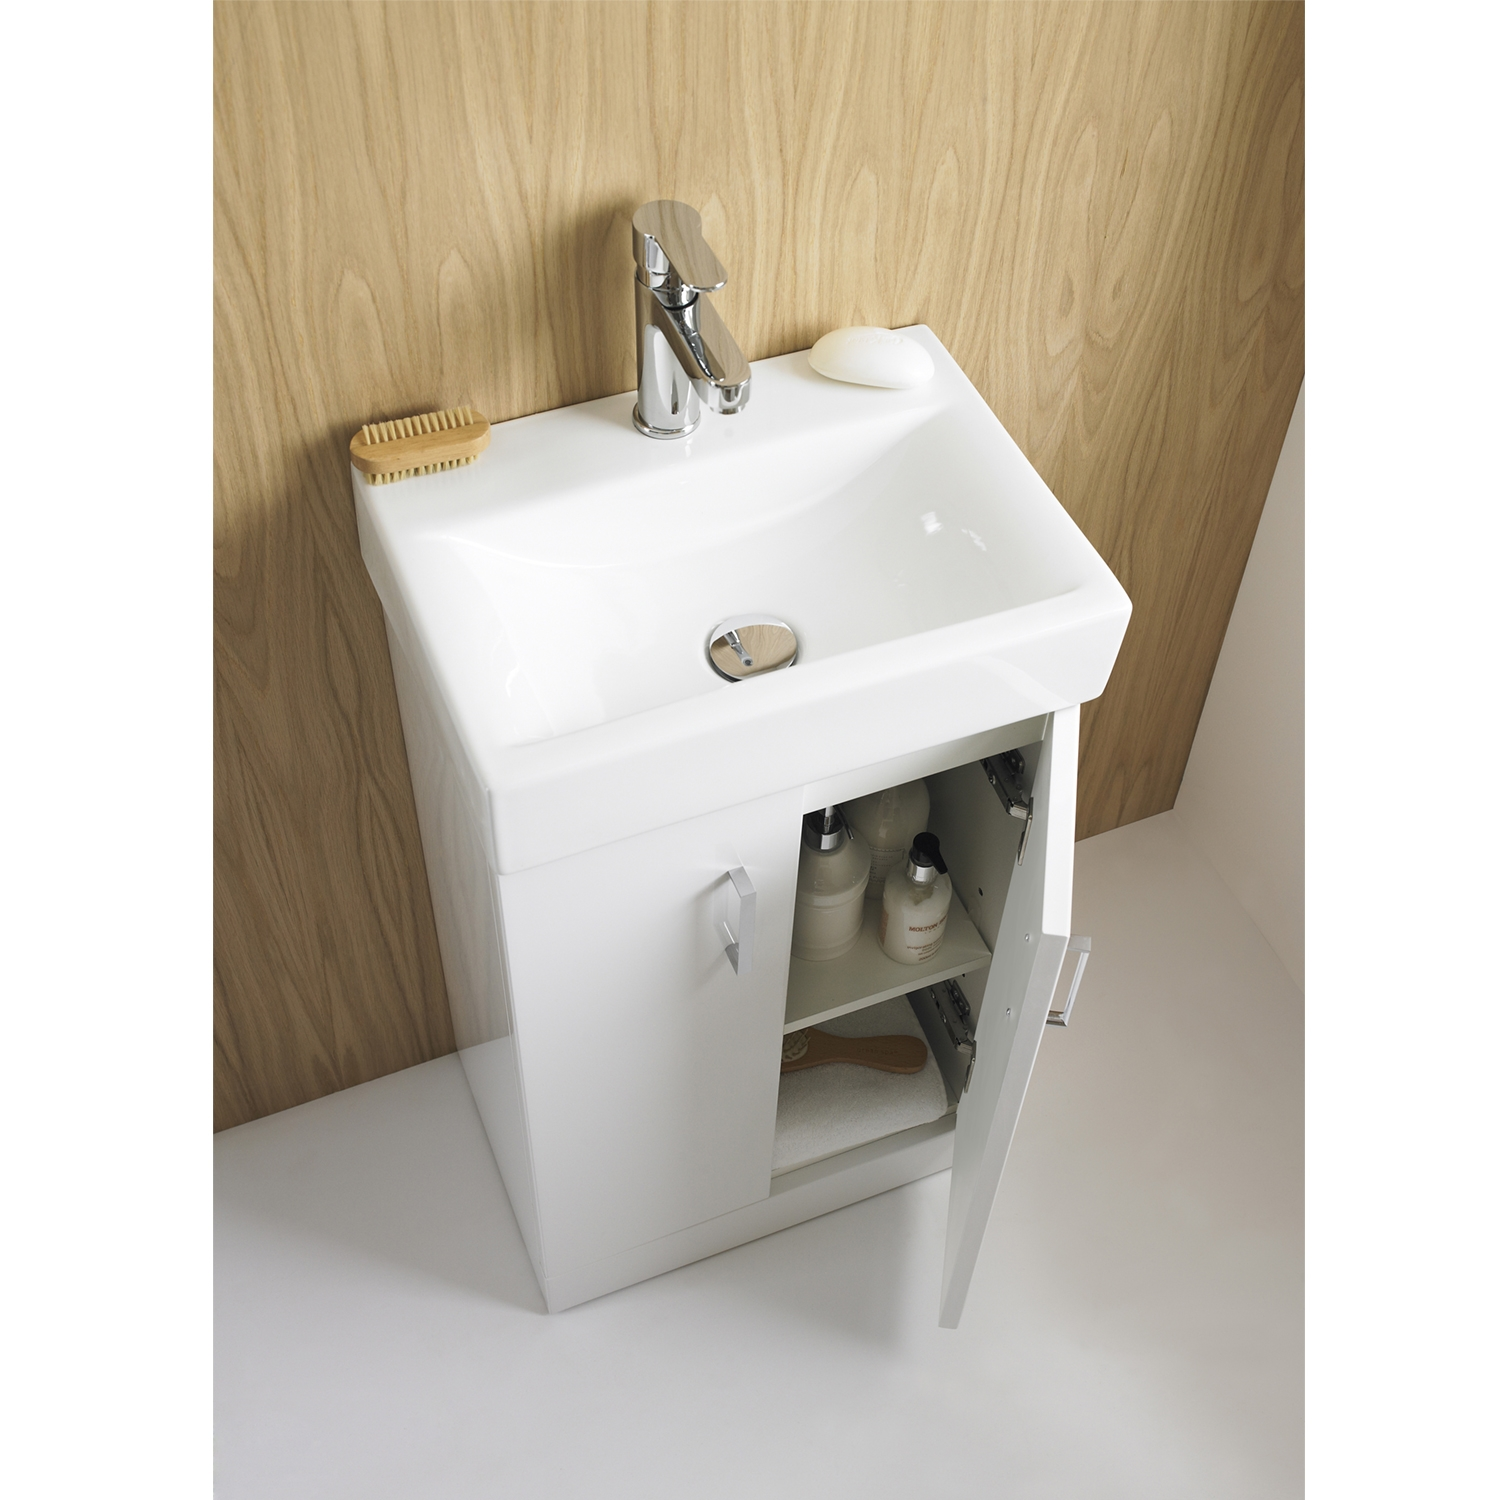 Premier Checkers White Wall Hung Vanity Unit with Basin 450mm Wide - 1 Tap Hole-0